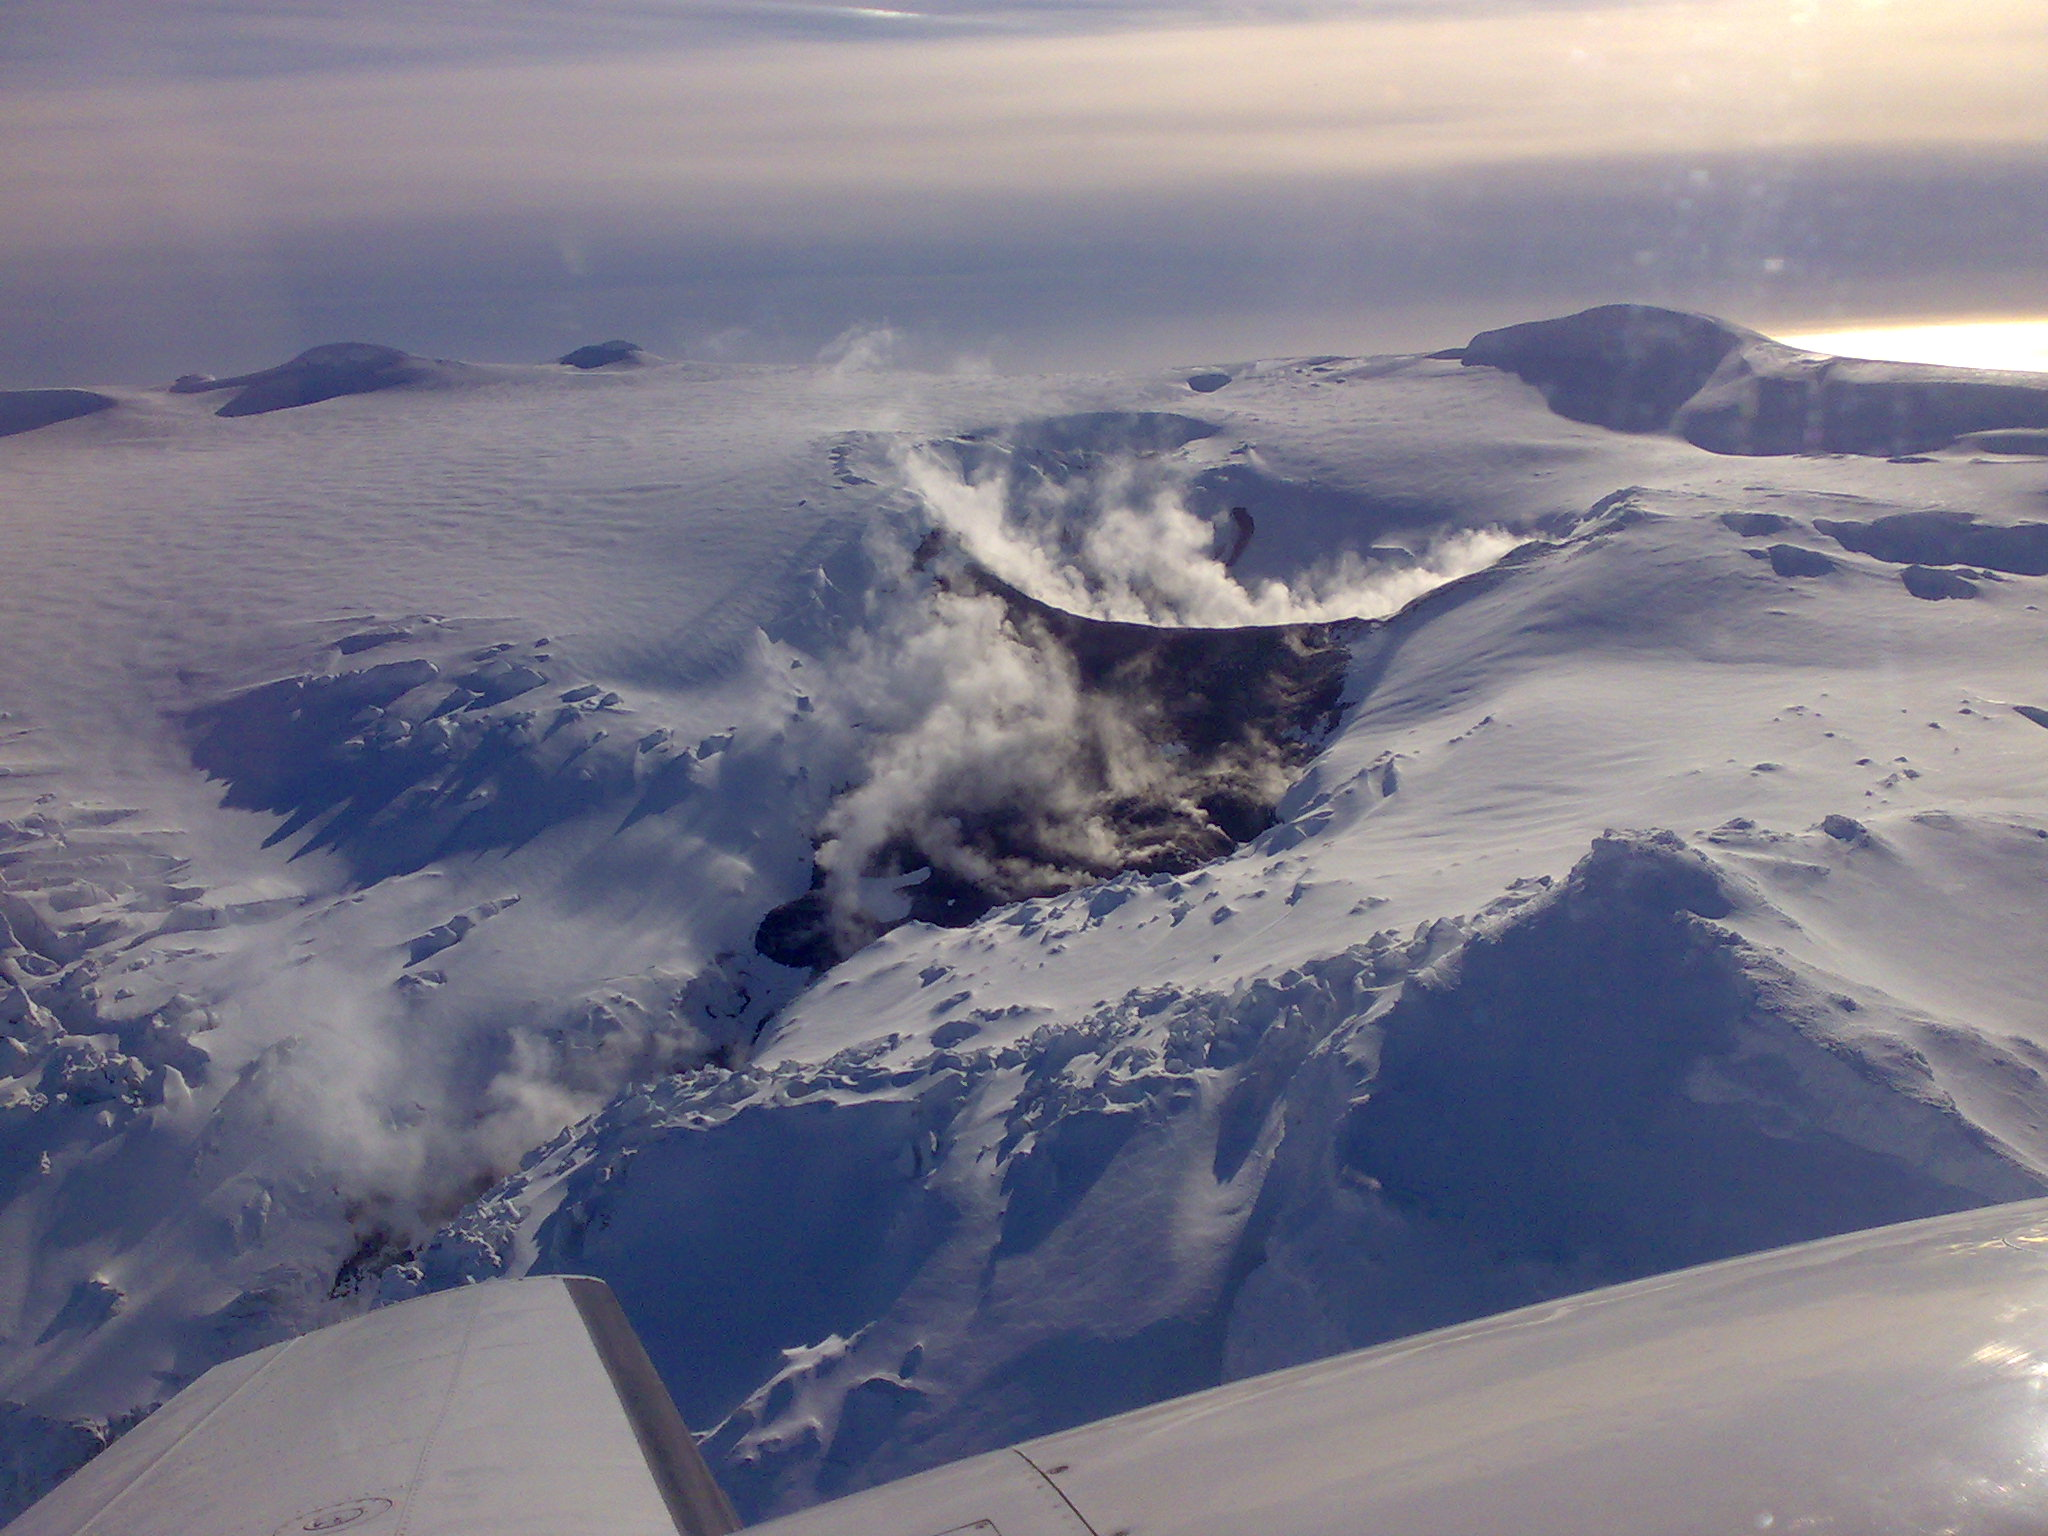 Eyjafjallajokull Is An Active Volcano Covered By A Glacier In South Iceland